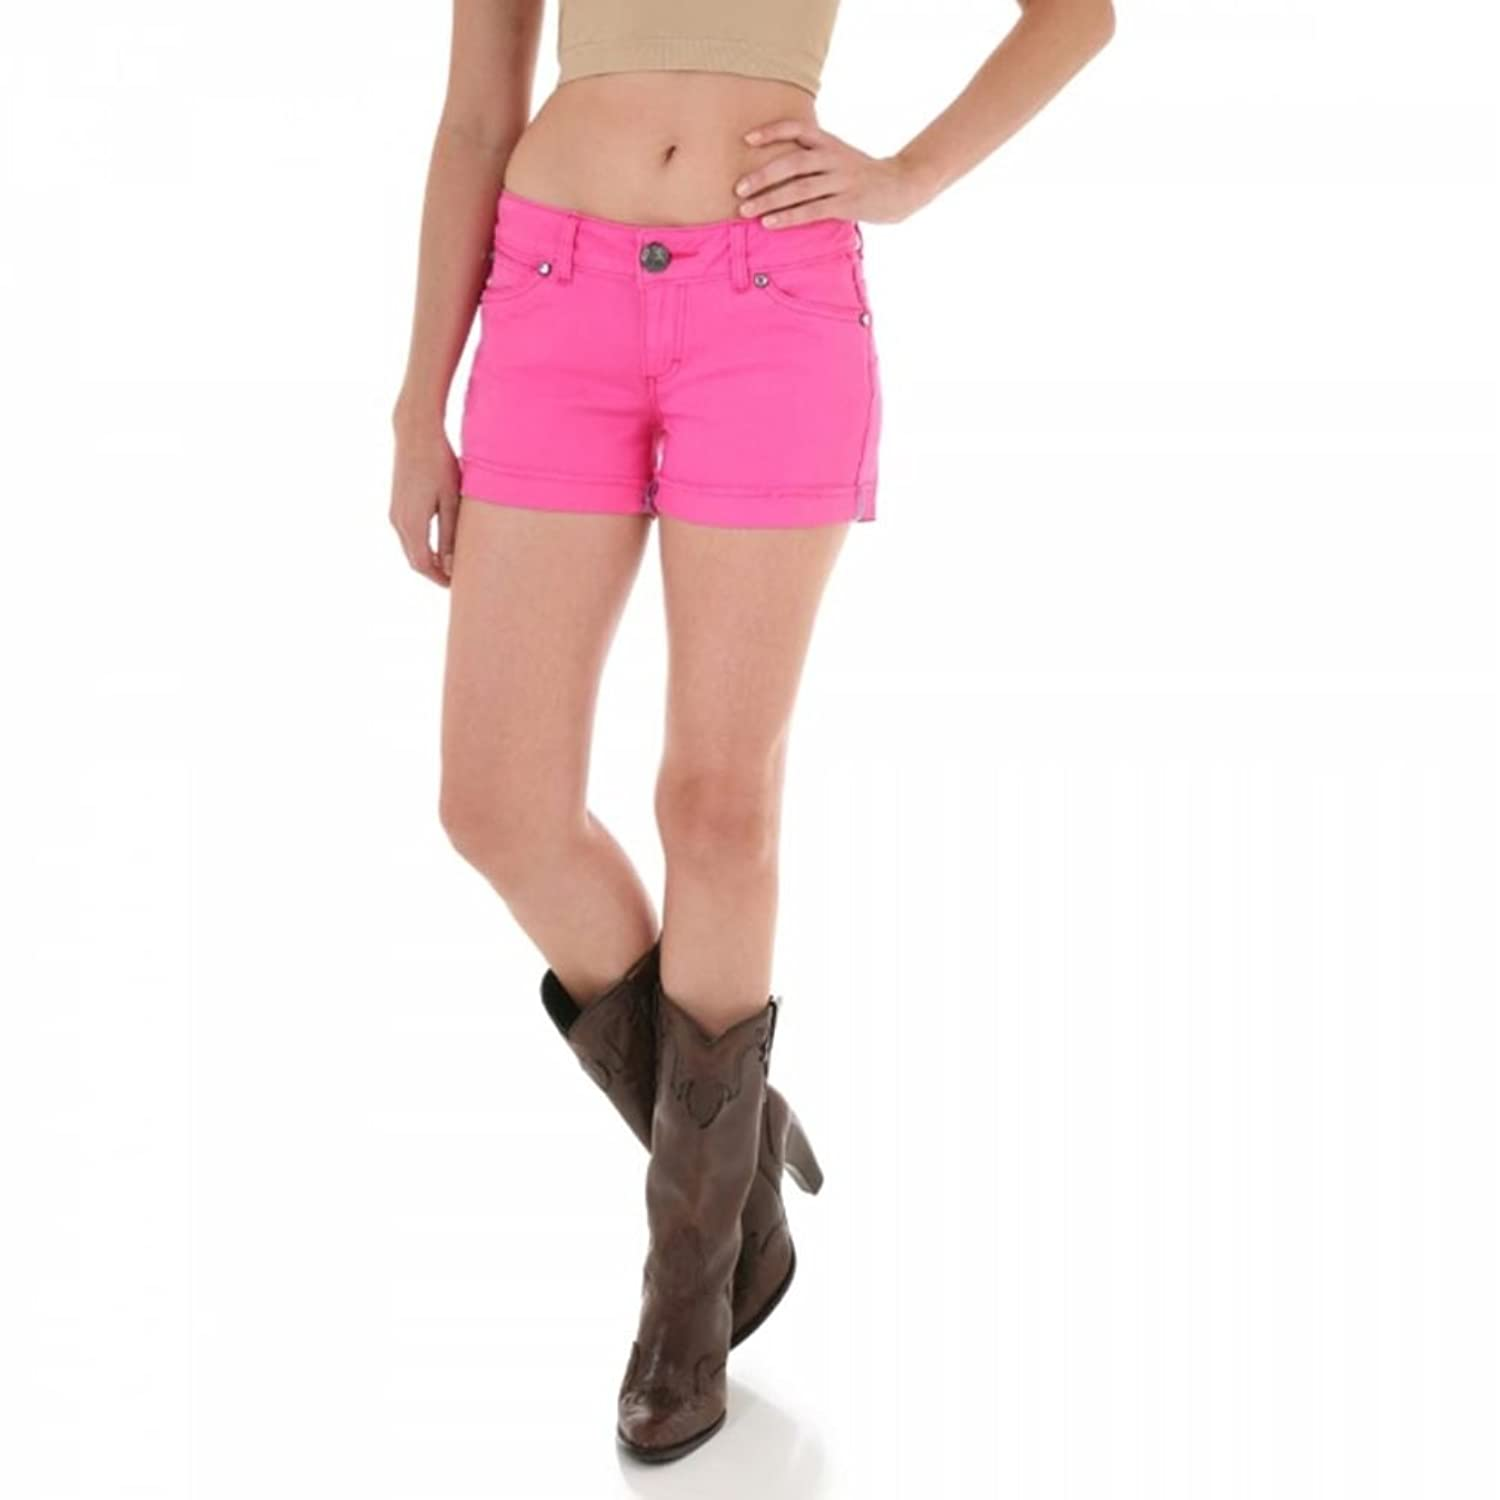 Wrangler Womens Booty Up Pink Shorts Size 0